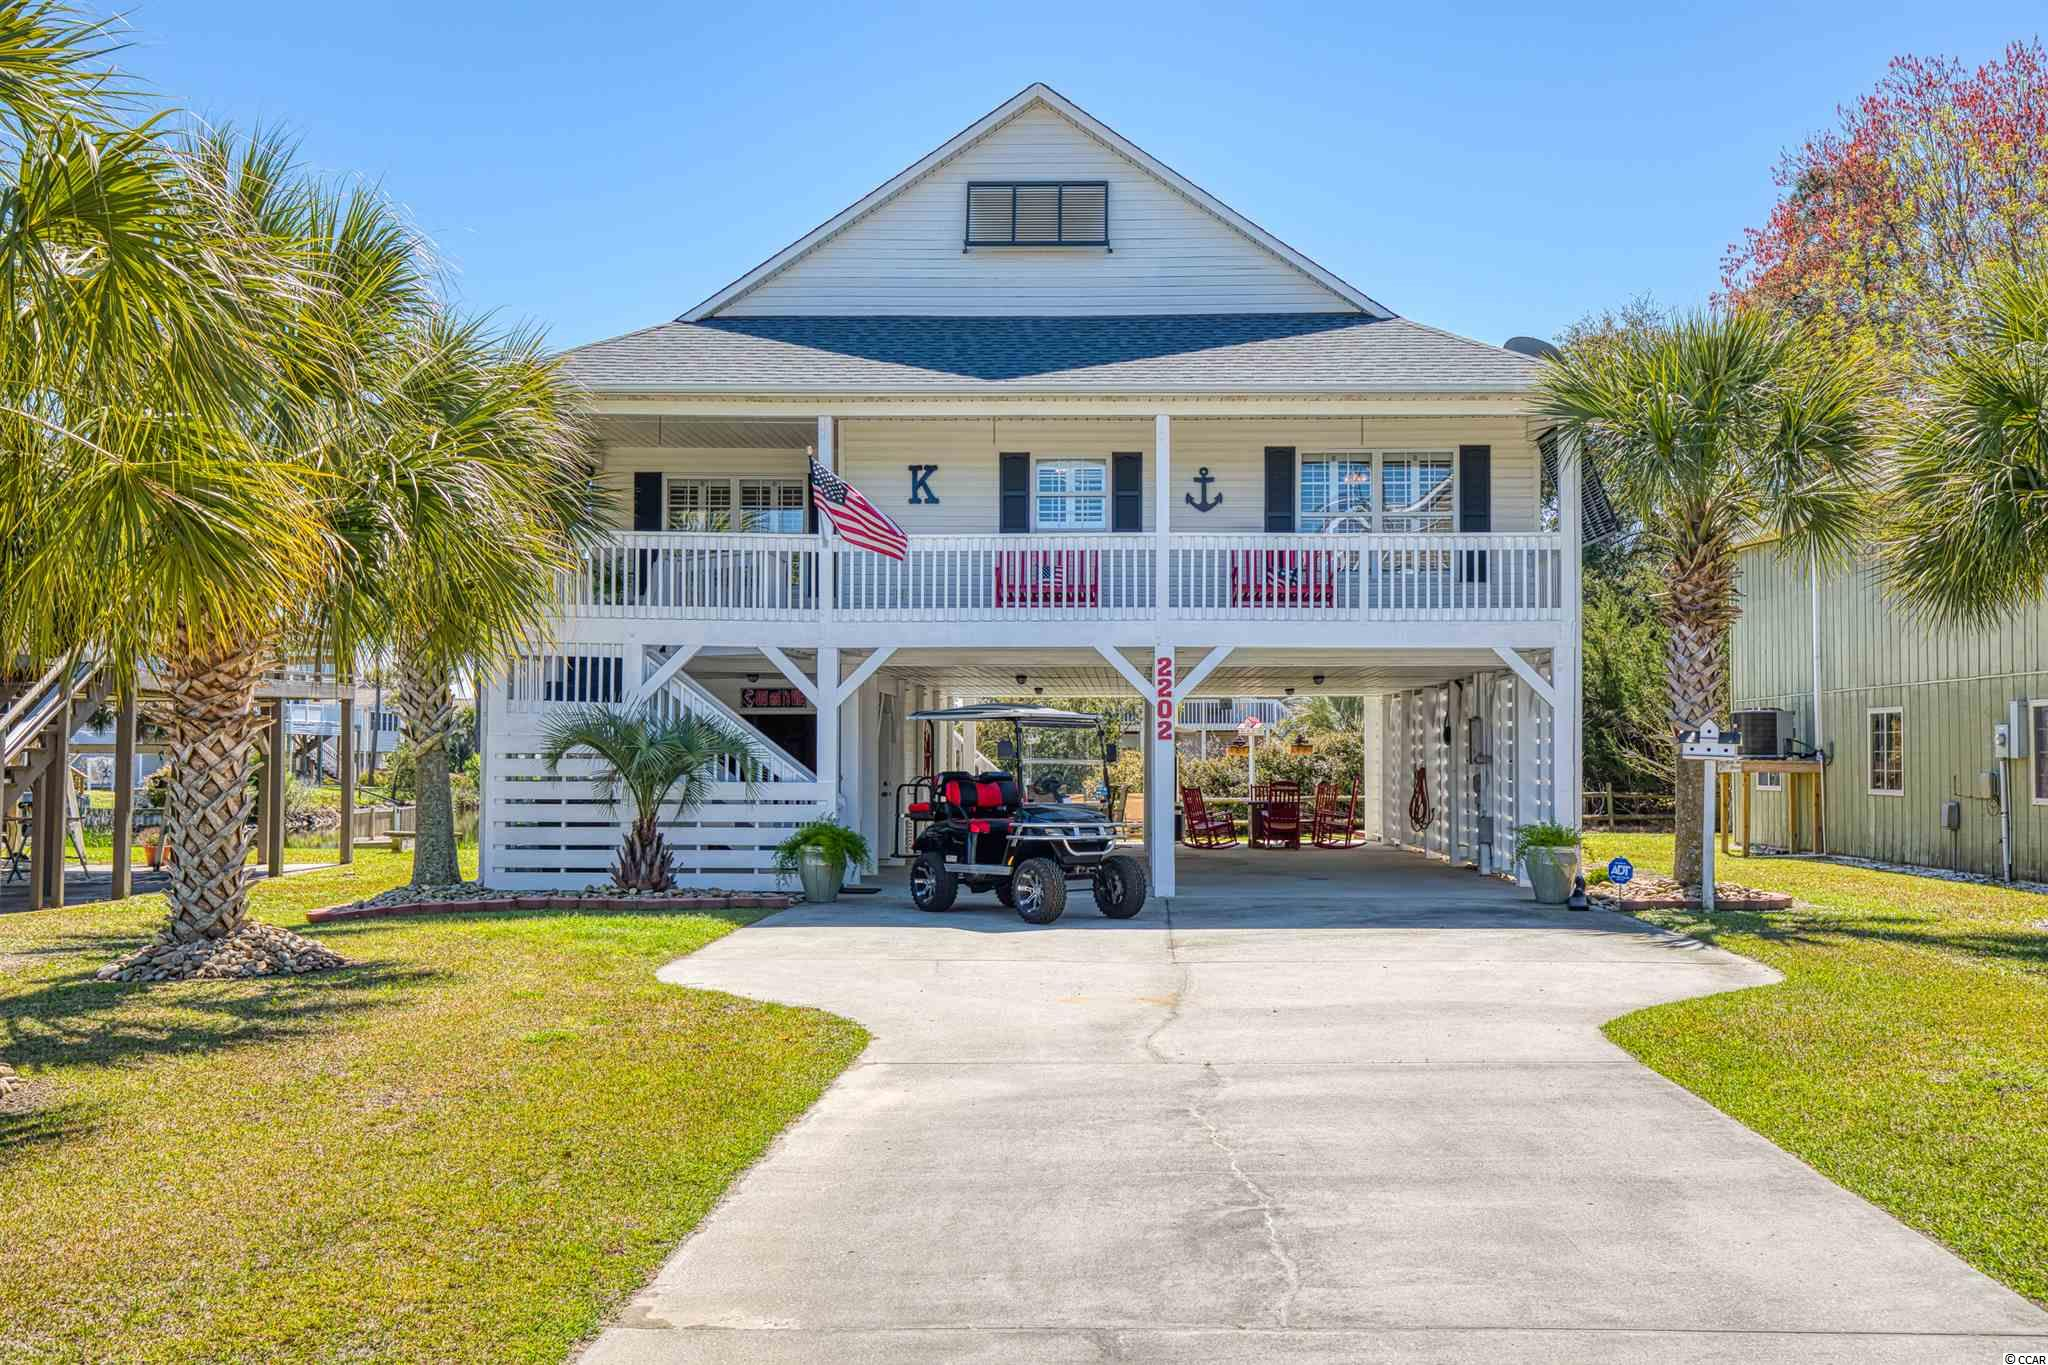 Looking to purchase the perfect beach home in the highly desirable area of Cherry Grove Beach? Here is your opportunity to own a turn key 3 bedroom 2 bath raised beach style home. The sellers of this beautiful home really put a lot into it and did not cut any corners from the landscaping, freshly painting the entire place on both inside and out, screening in the back porch, new A/C 2020, Dishwasher Jan 2020, Stove 2021, Fridge 2020, and brand new washer/dryer.  As you pull into the long driveway under the beach home you will find a nice size storage unit with built in shelves for all your tools, beach items, and even golf cart!  There is an enclosed outdoor shower behind the home as well as outdoor sink and grilling patio.  The home features Brazilian Cherry wood floors, a split floor plan, electric fireplace, granite countertops in the kitchen, a screened in back porch ( overlooking the beautiful pond), and plantation shutters.  Sellers put in a barn door in the master bedroom to access the bathroom and Bermuda shutters all around the home.  Too many updates to name!!! Grab your golf cart and take it less than a 5 minute ride to the beach!!